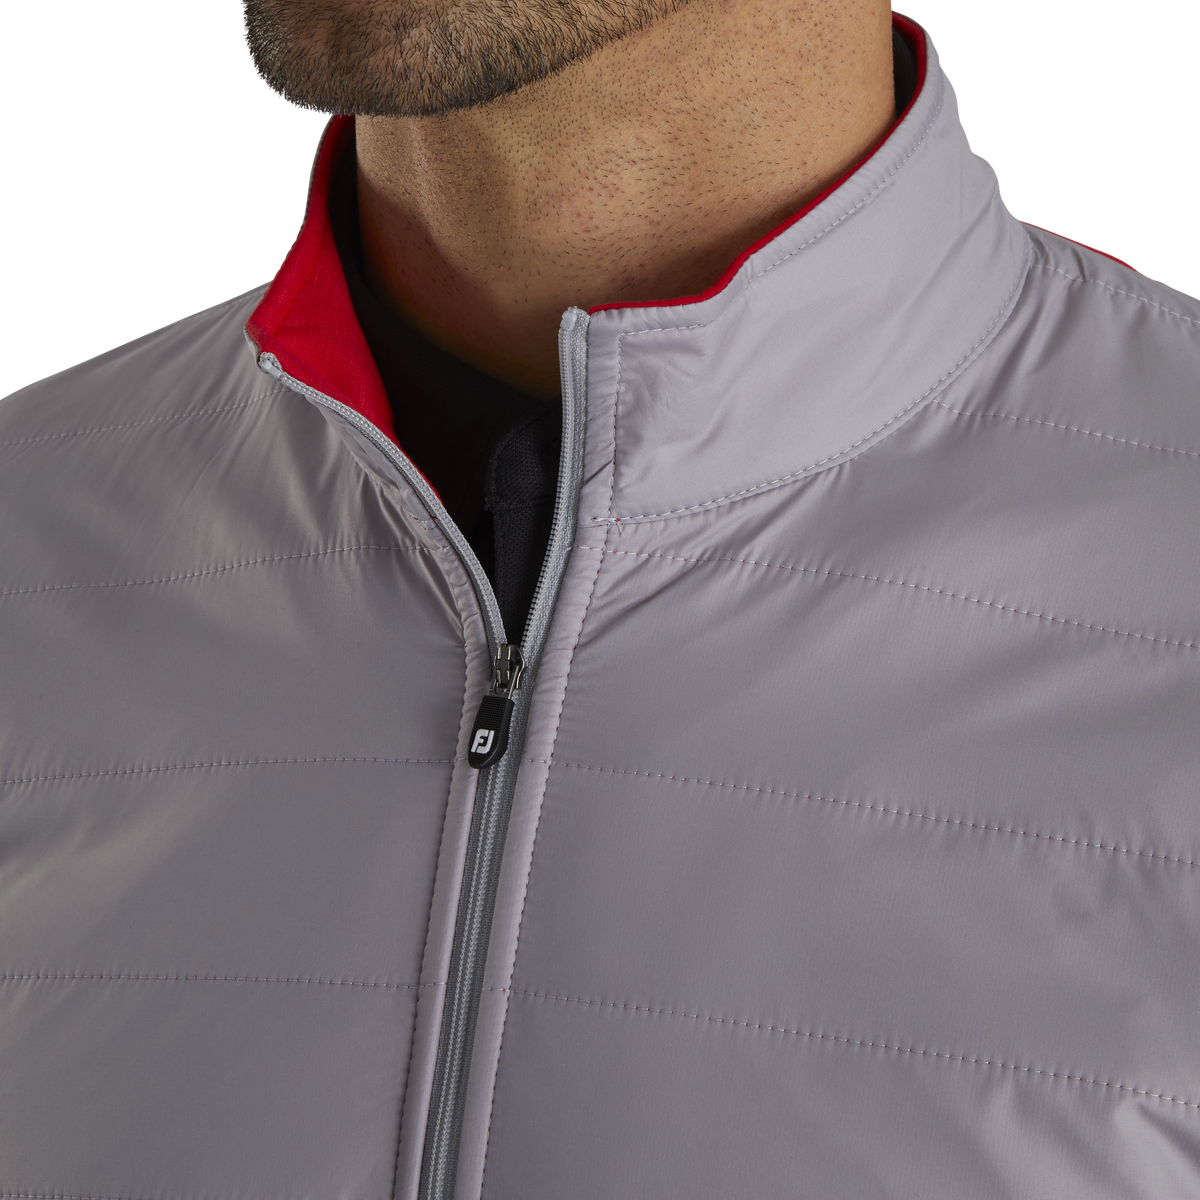 Full-Zip Hybrid Jacket